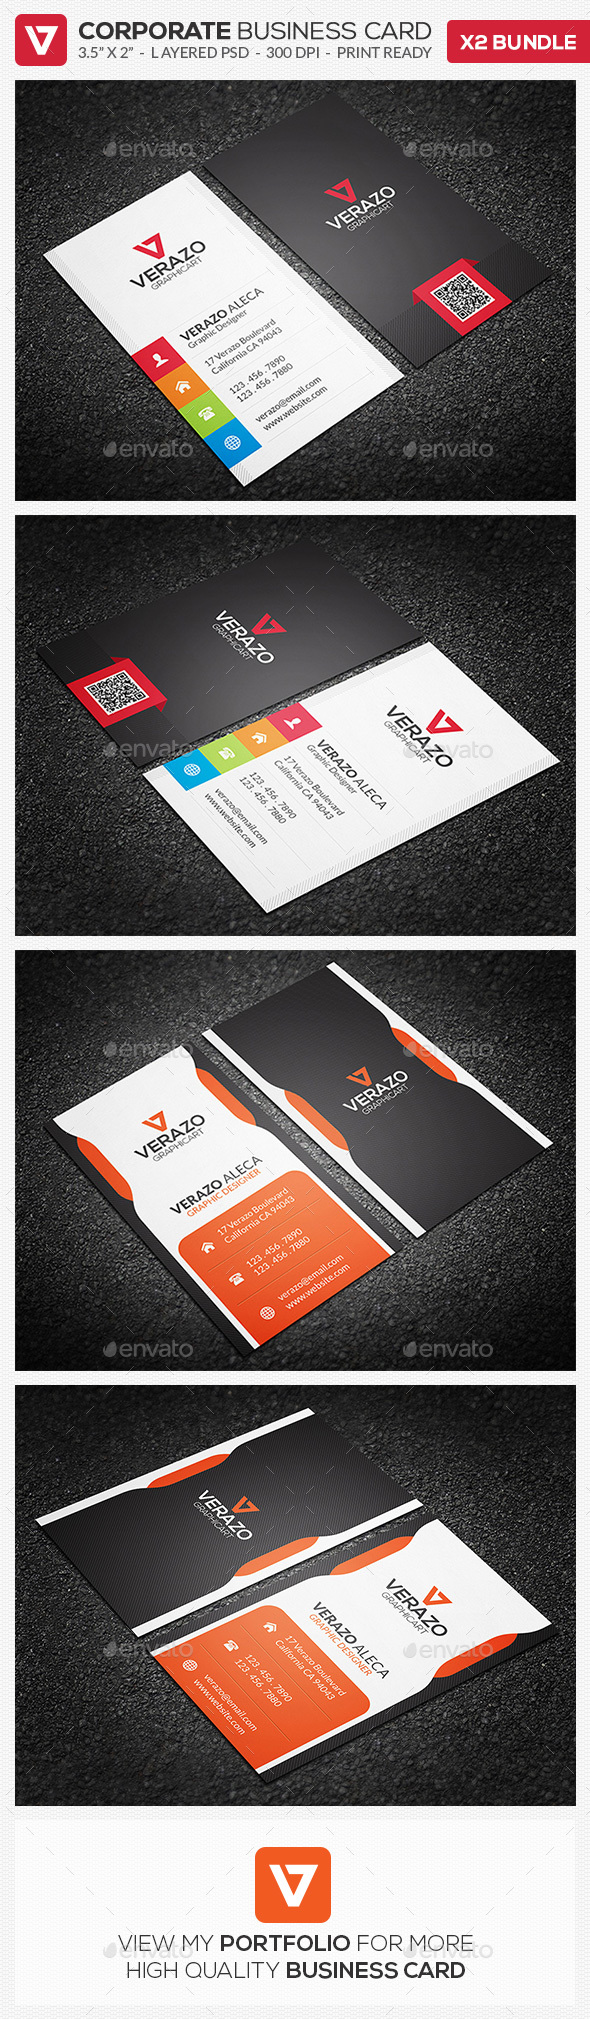 Business Card Bundle 24 - Vertical by verazo | GraphicRiver